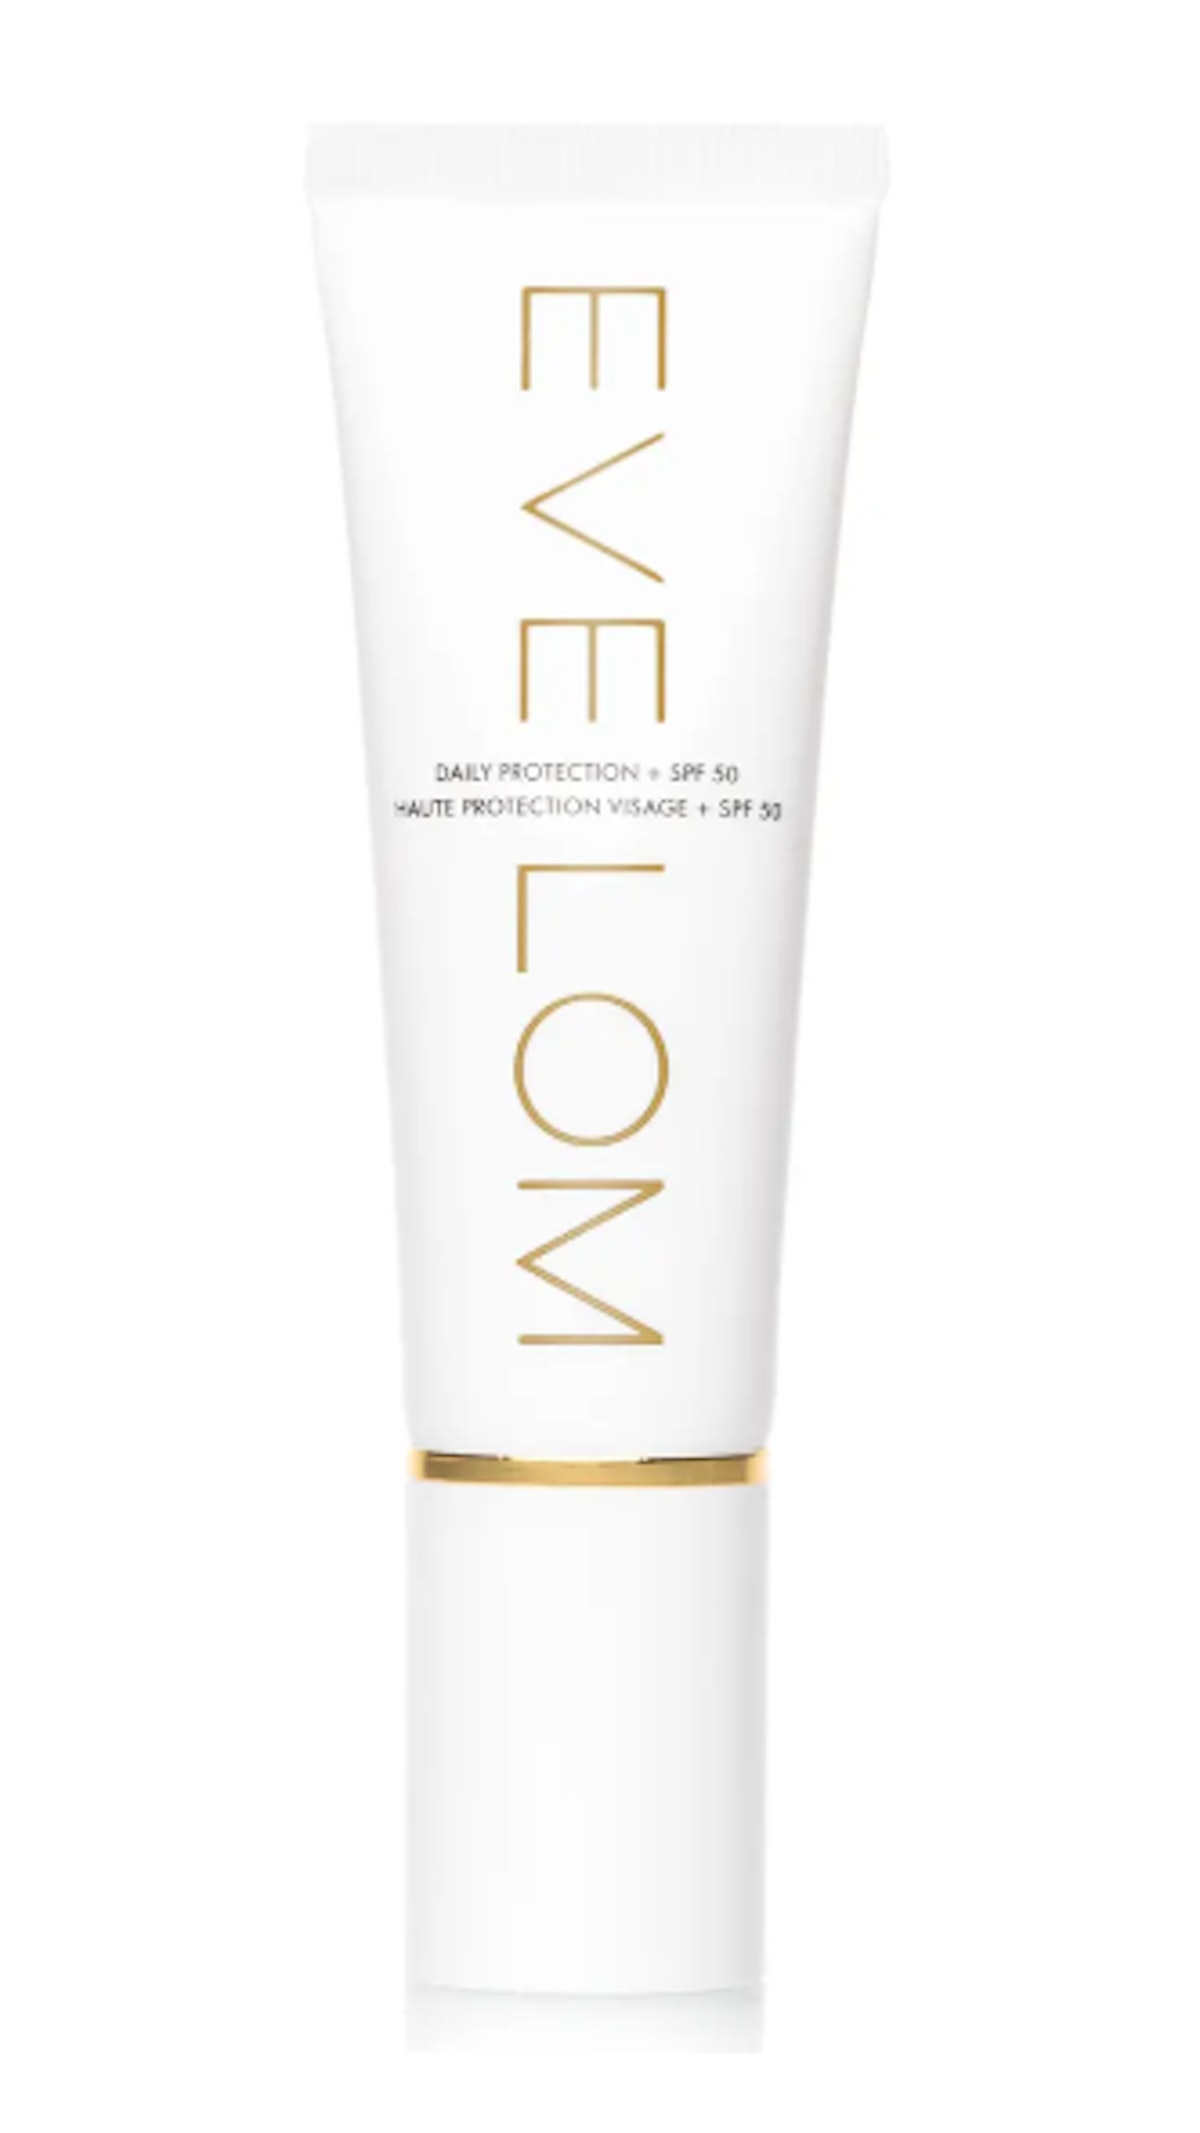 Daily Protection Broad Spectrum SPF 50 Sunscreen